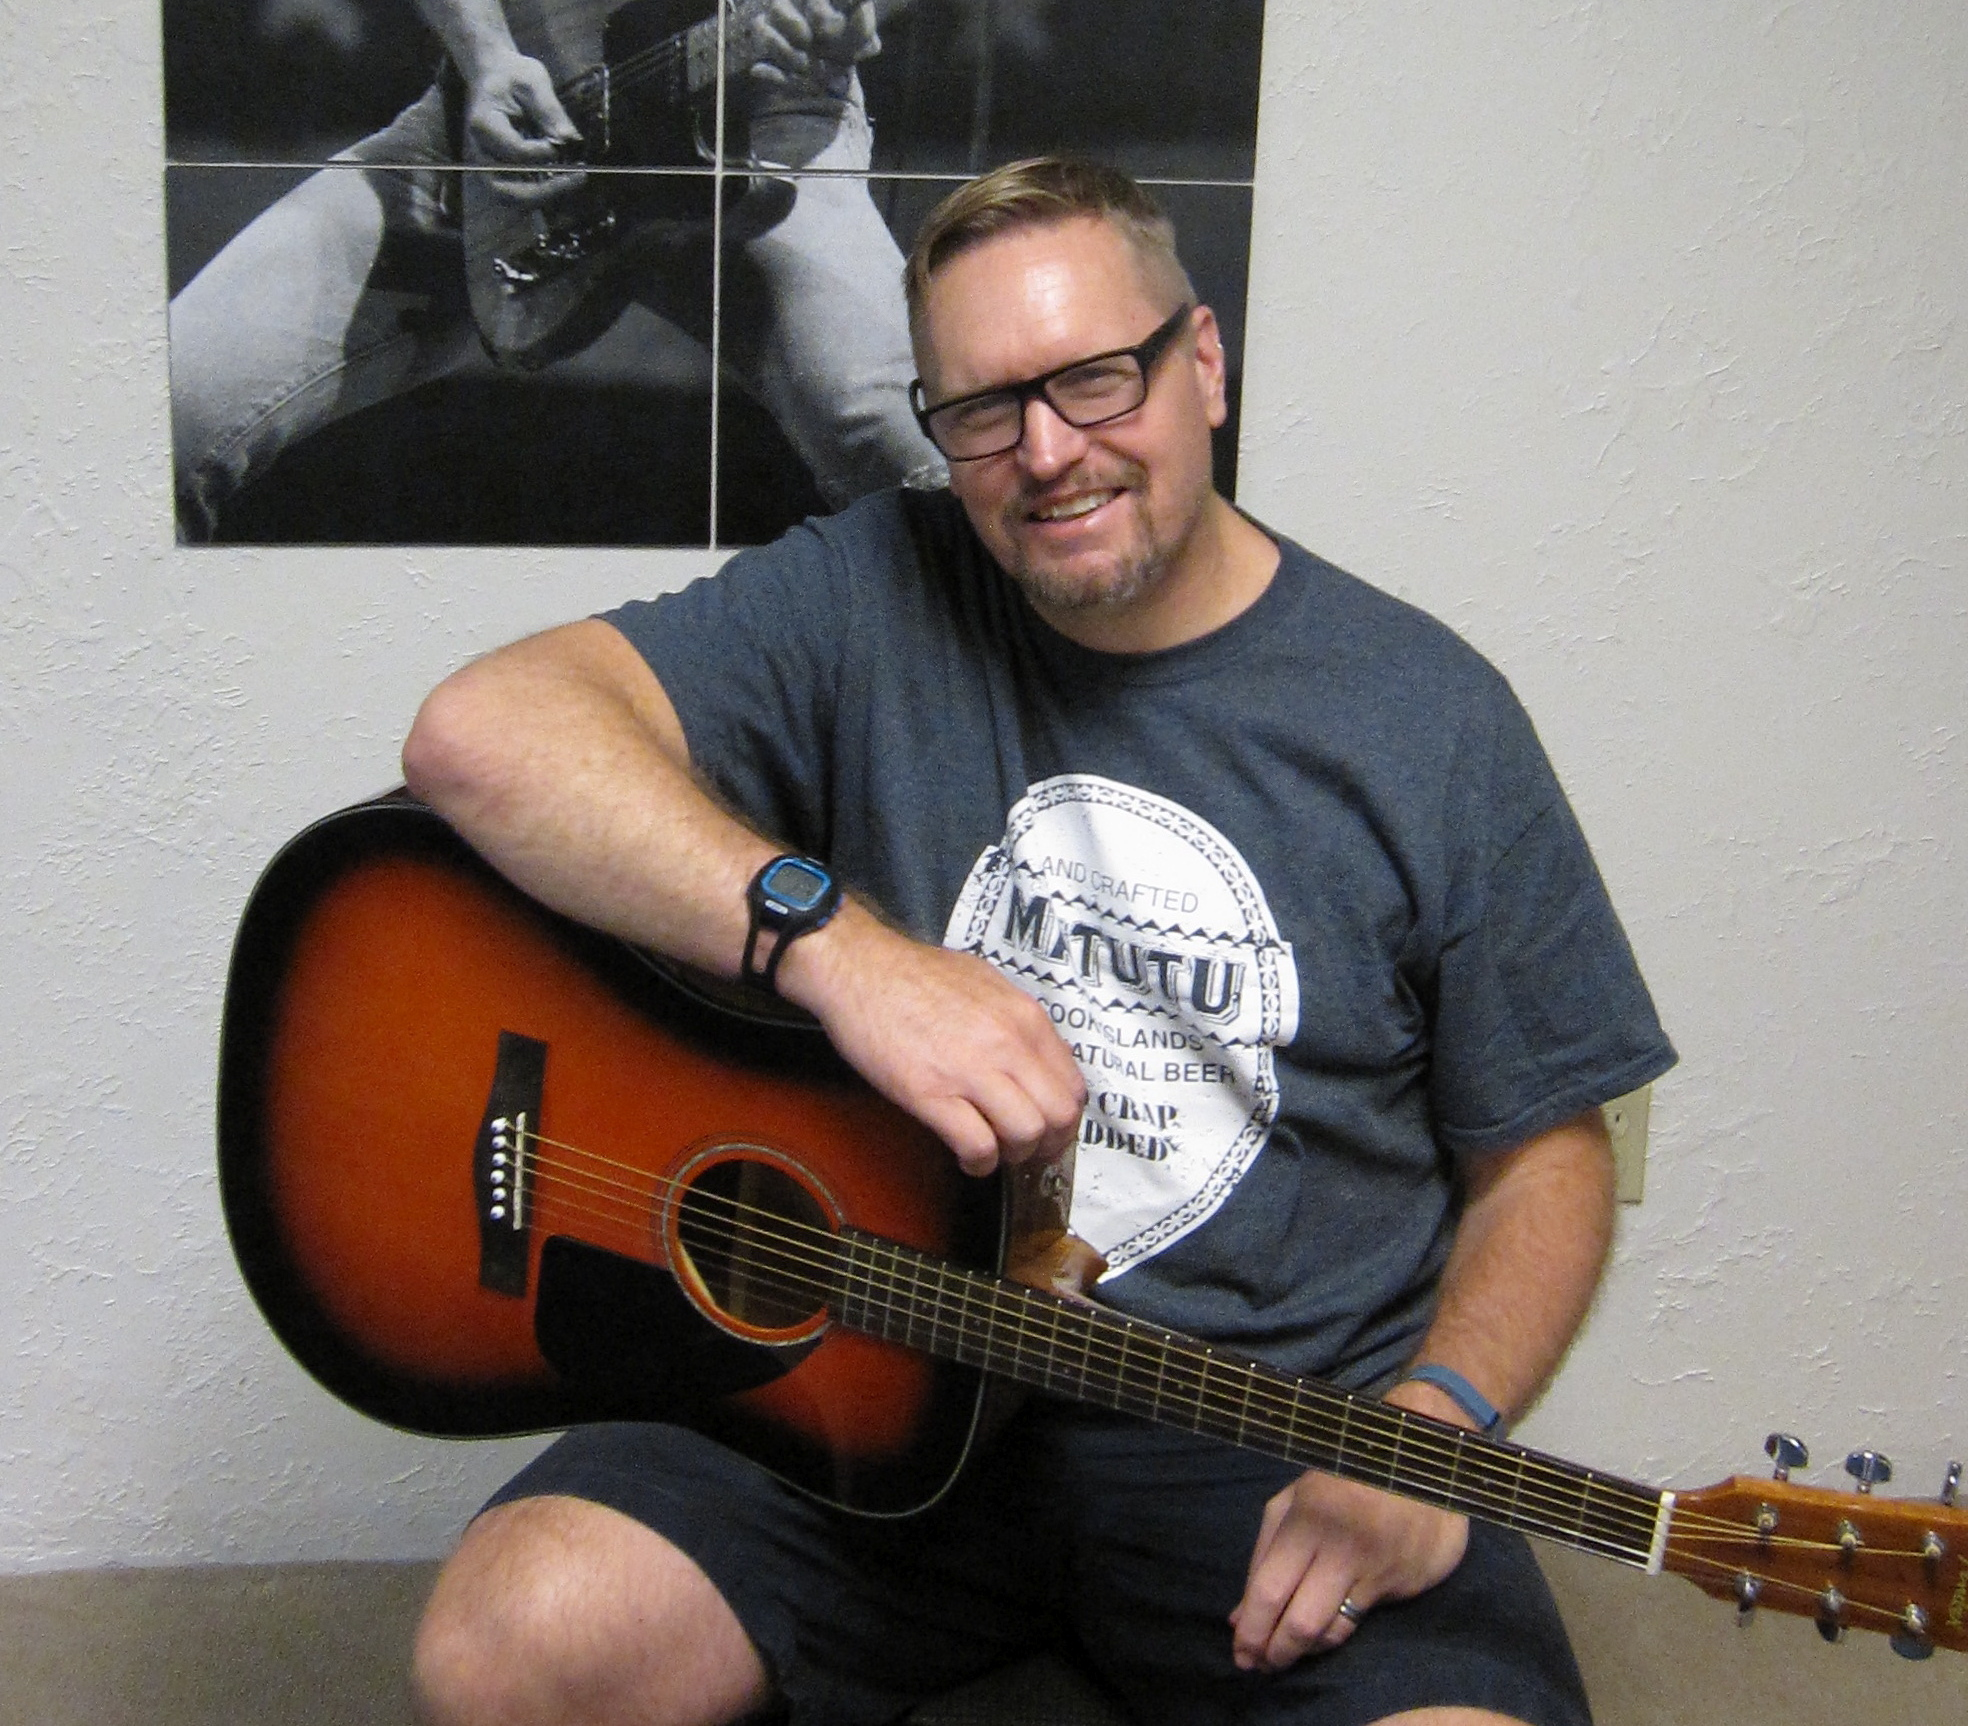 Beginner Guitar Lessons Slc Utah How To Read Chord Diagrams Self Taught I Noticed An Improvement Right From The Start Preston Really Took Time Understand Where Was At And What My Goals Were He Helped Me Plot Out